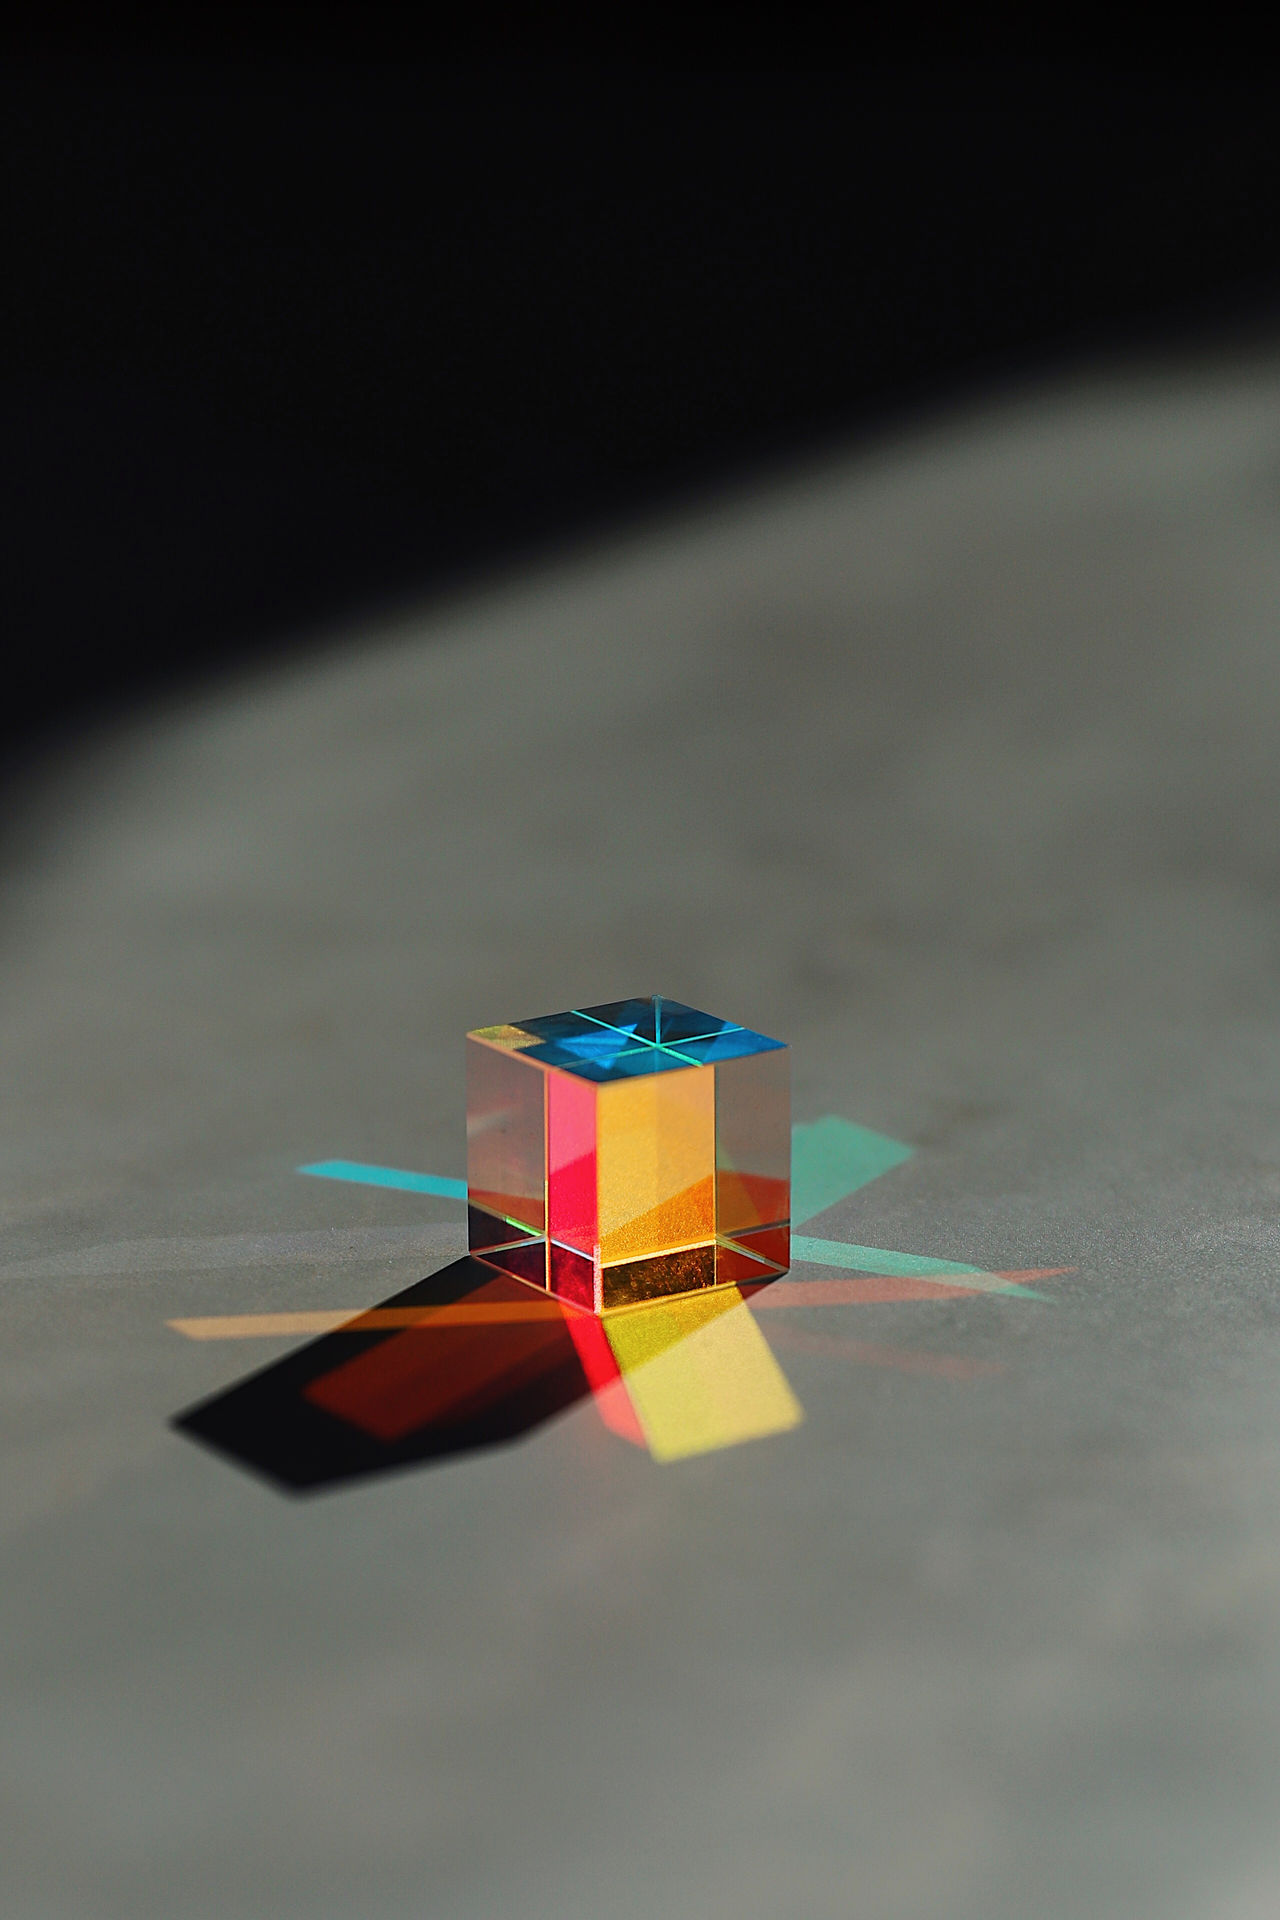 Cube shape on multi colored diagram on table